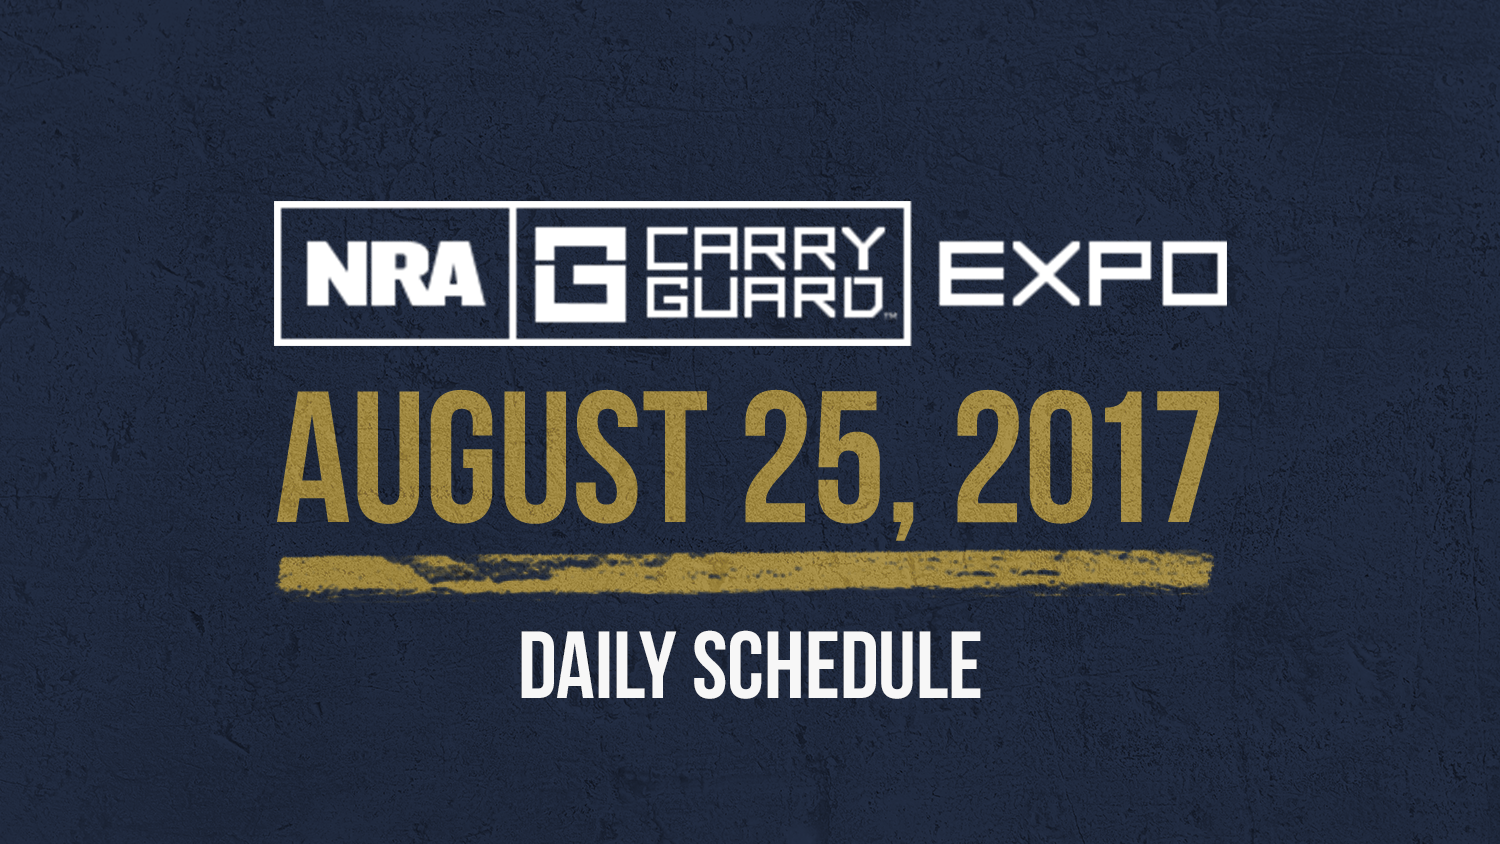 NRA Carry Guard Expo Events: Friday, August 25th